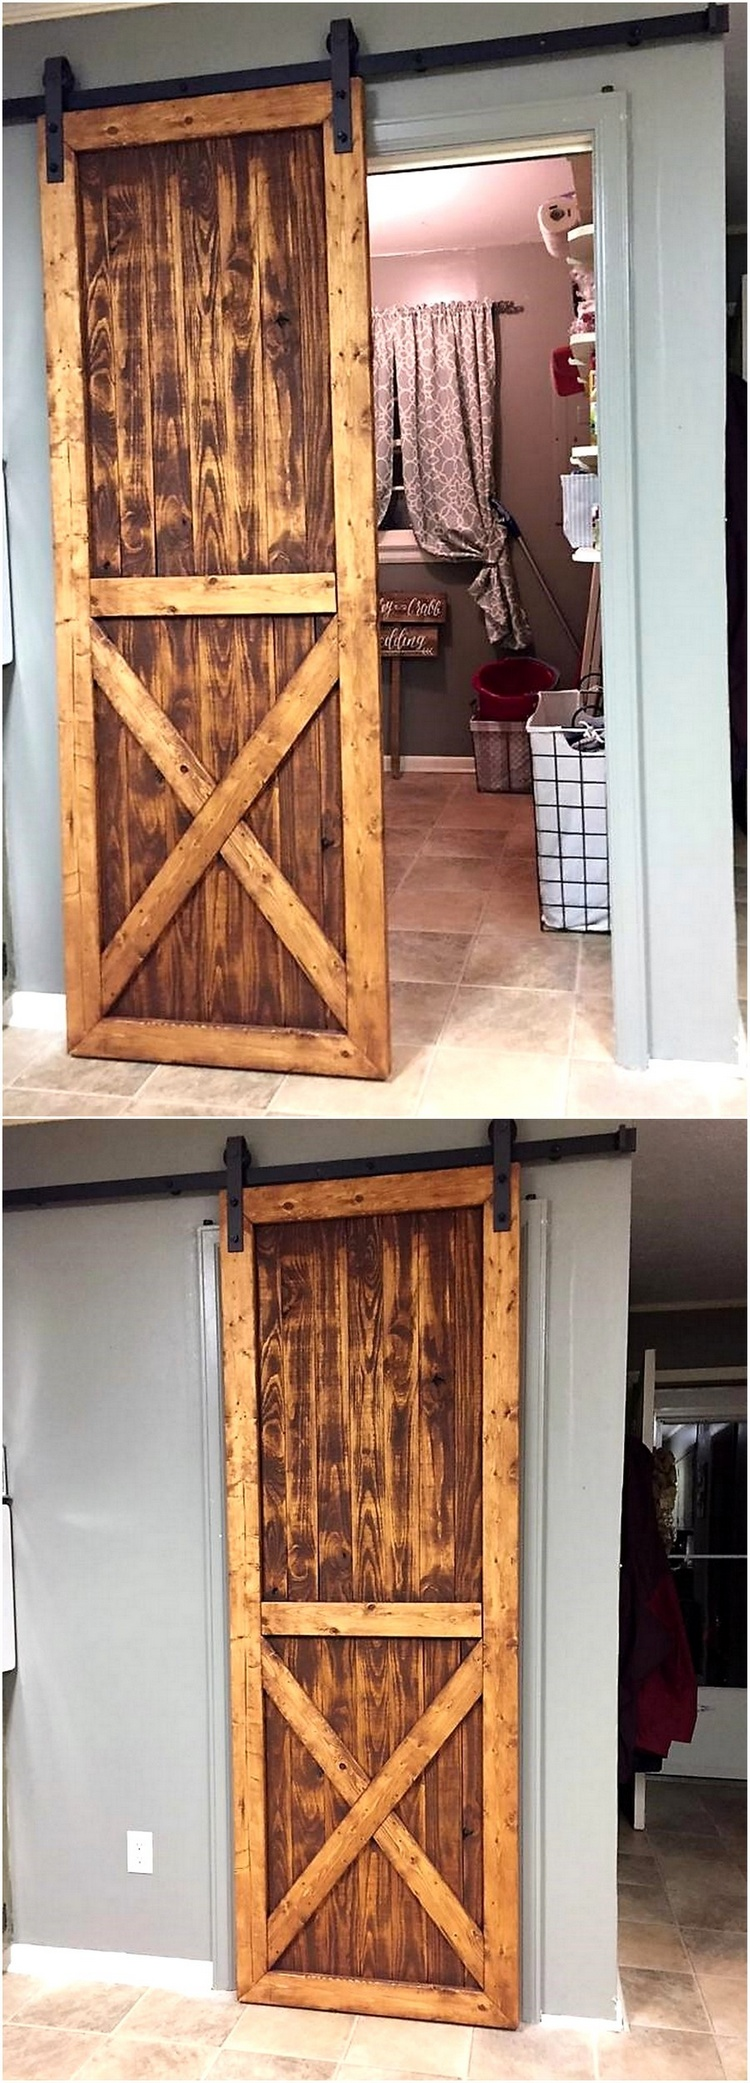 Few Nice Ideas For Pallet Wood Repurposing